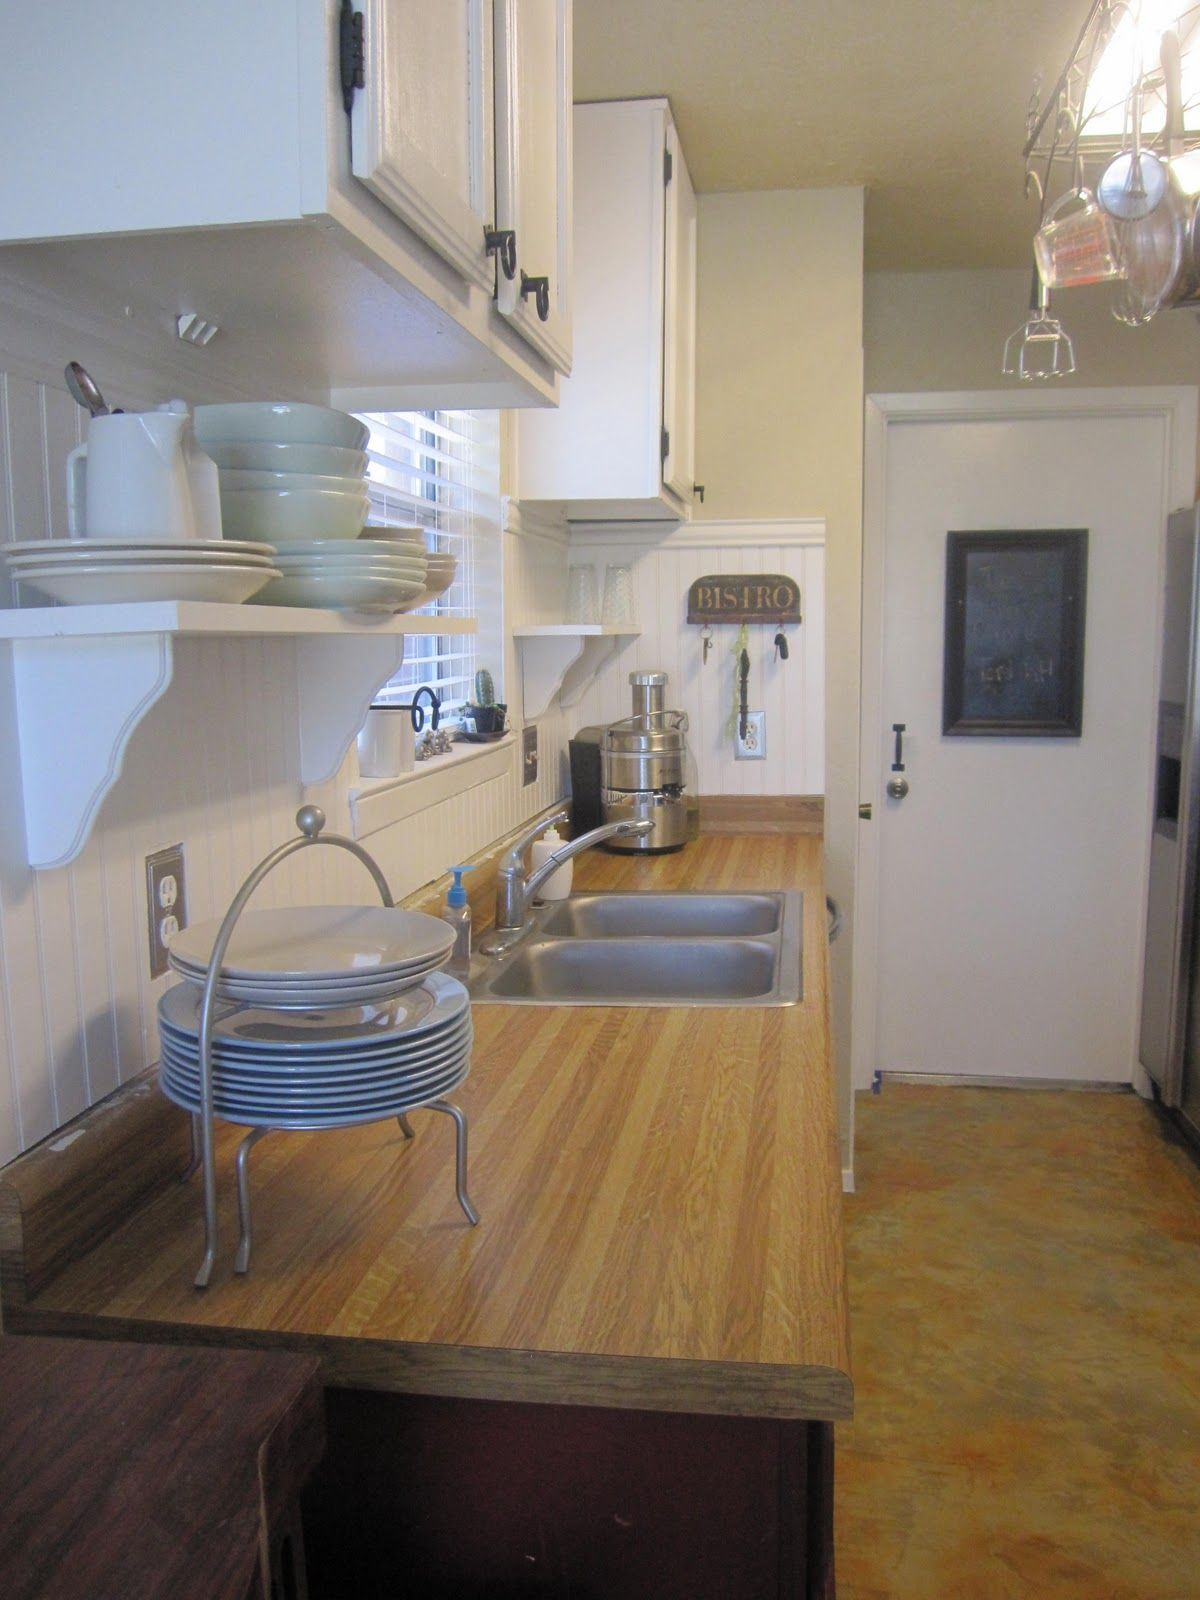 As The Below Kitchens Prove Butcher Block Countertops Can Go With